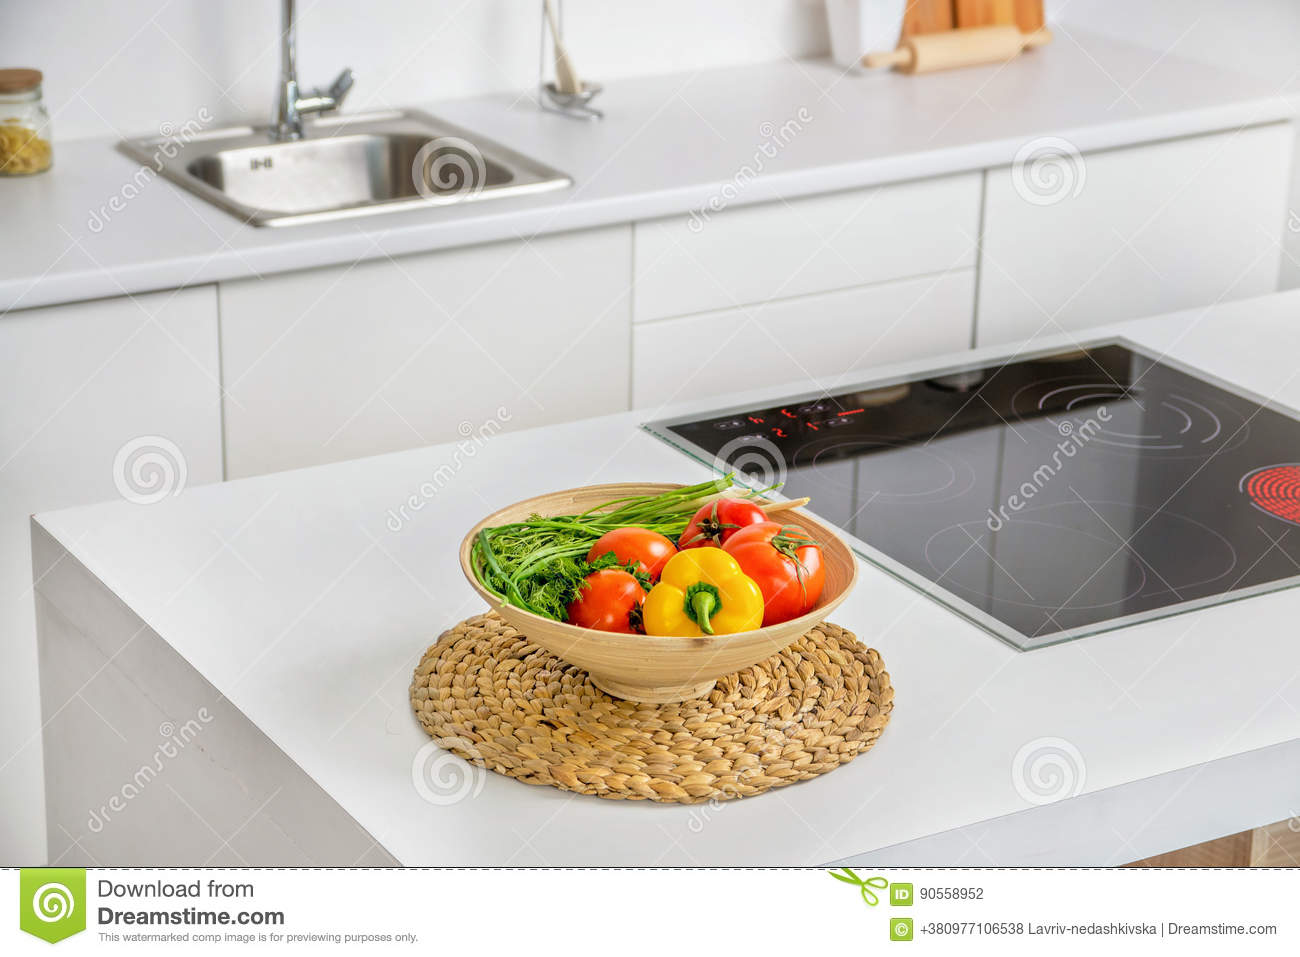 Closeup of vegetables in the bowl in modern white kitchen with induction cooking heater and sink on background